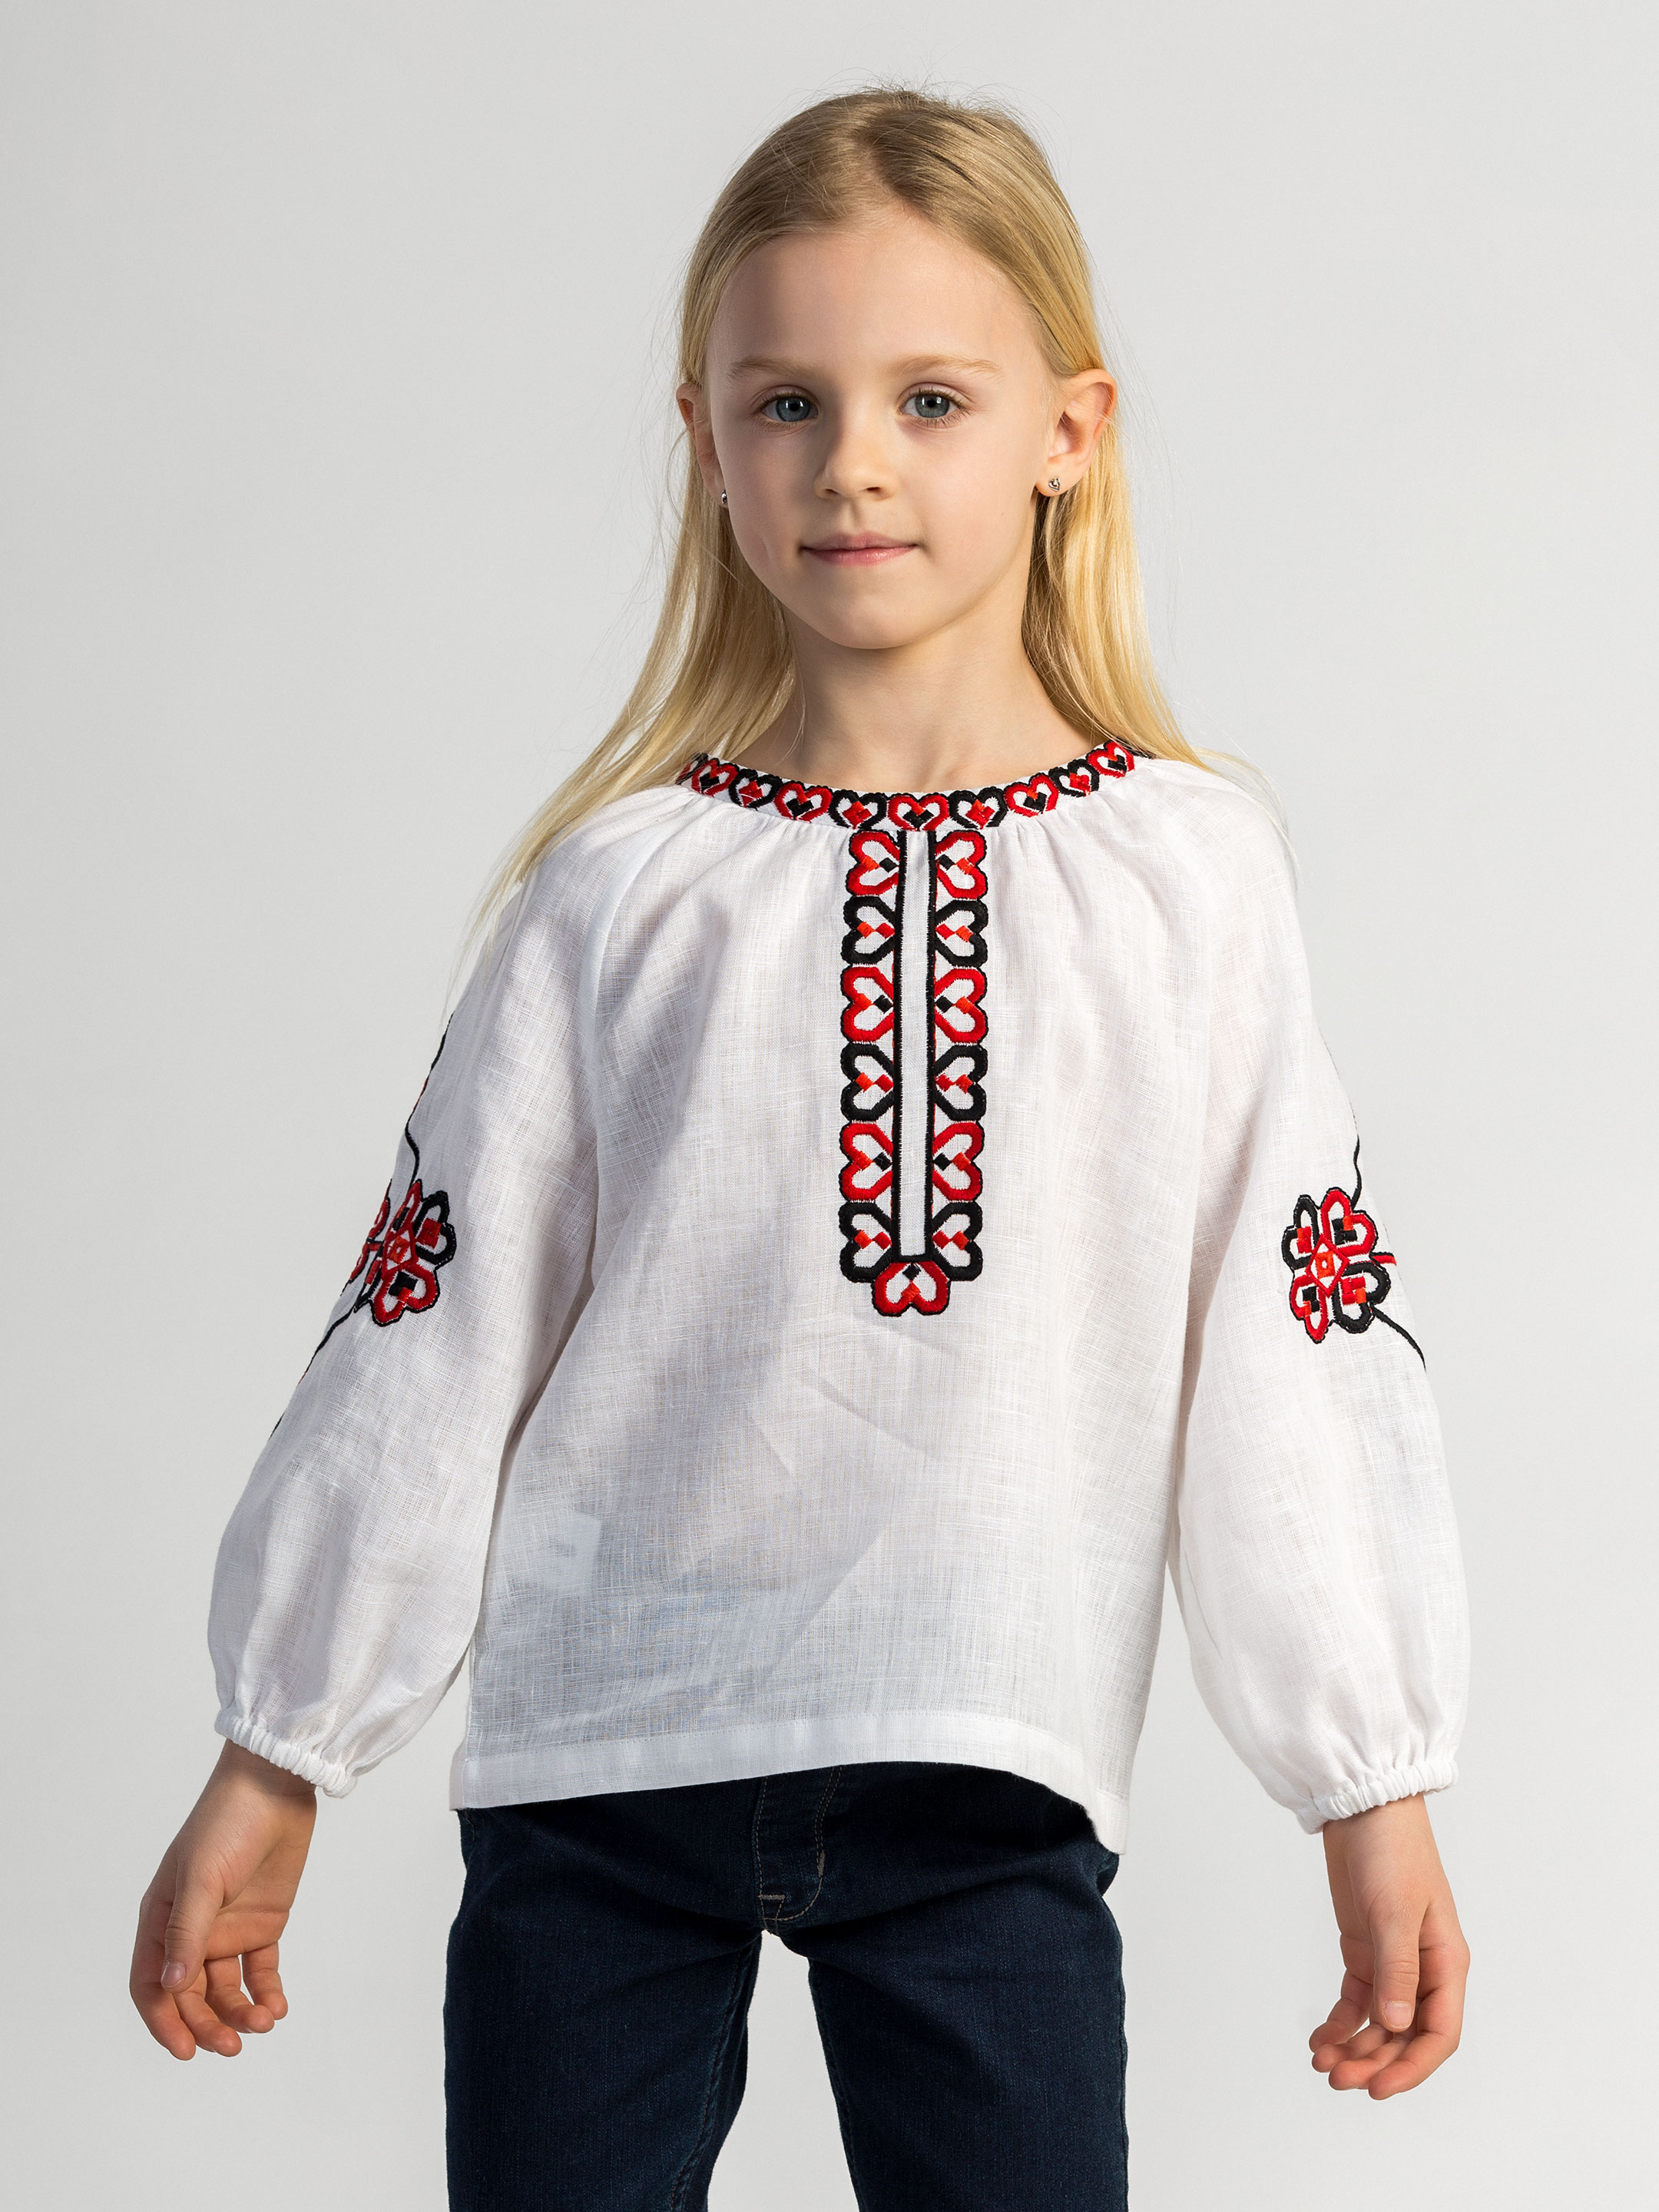 Embroidered shirt for girls Red Heart 6